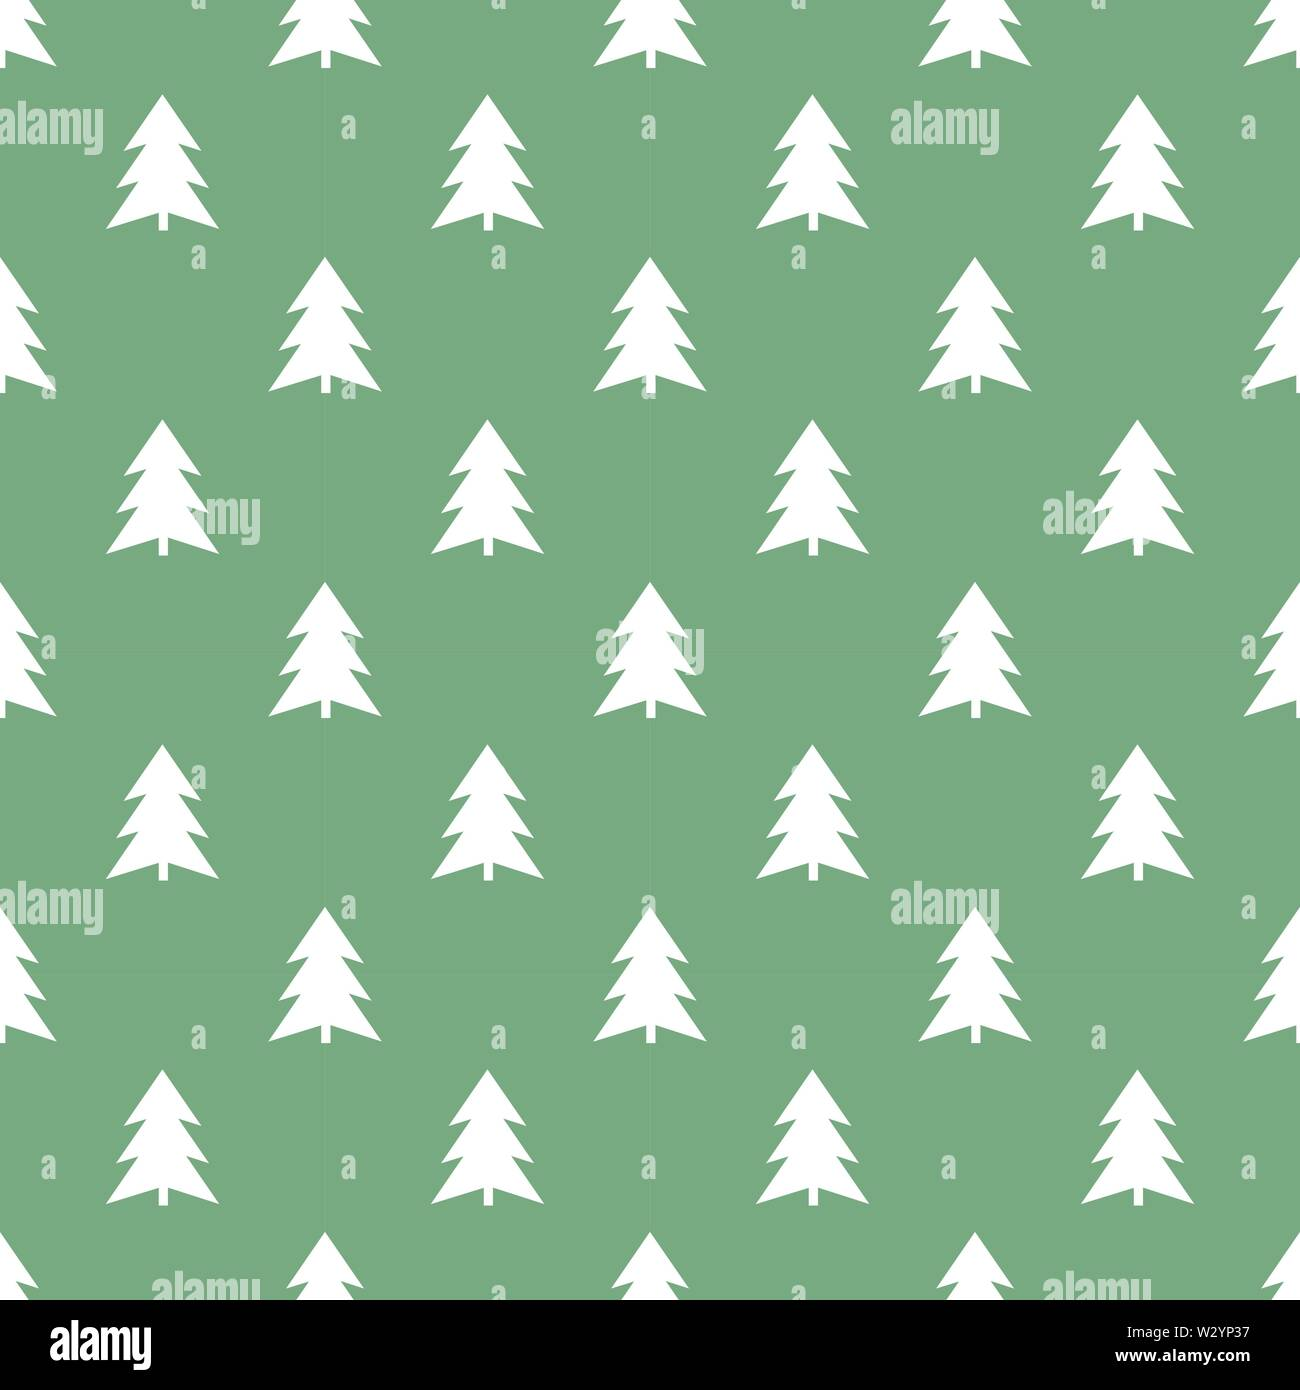 White Christmas trees on green background seamless pattern. - Stock Image